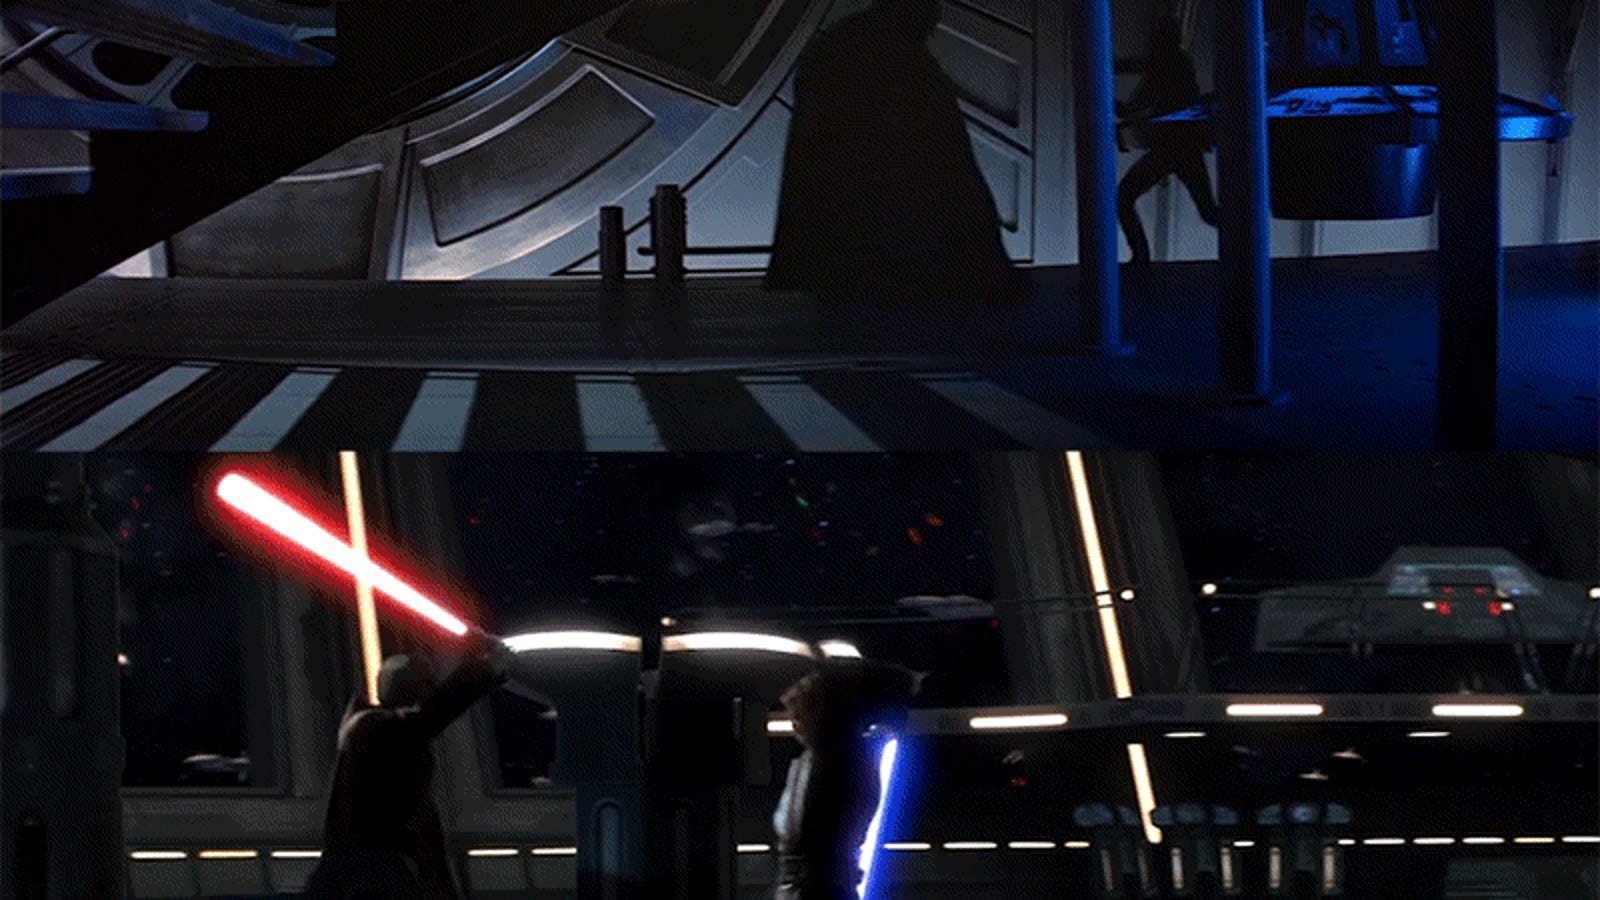 The stunning visual symmetry between the old Star Wars trilogy and the new movies